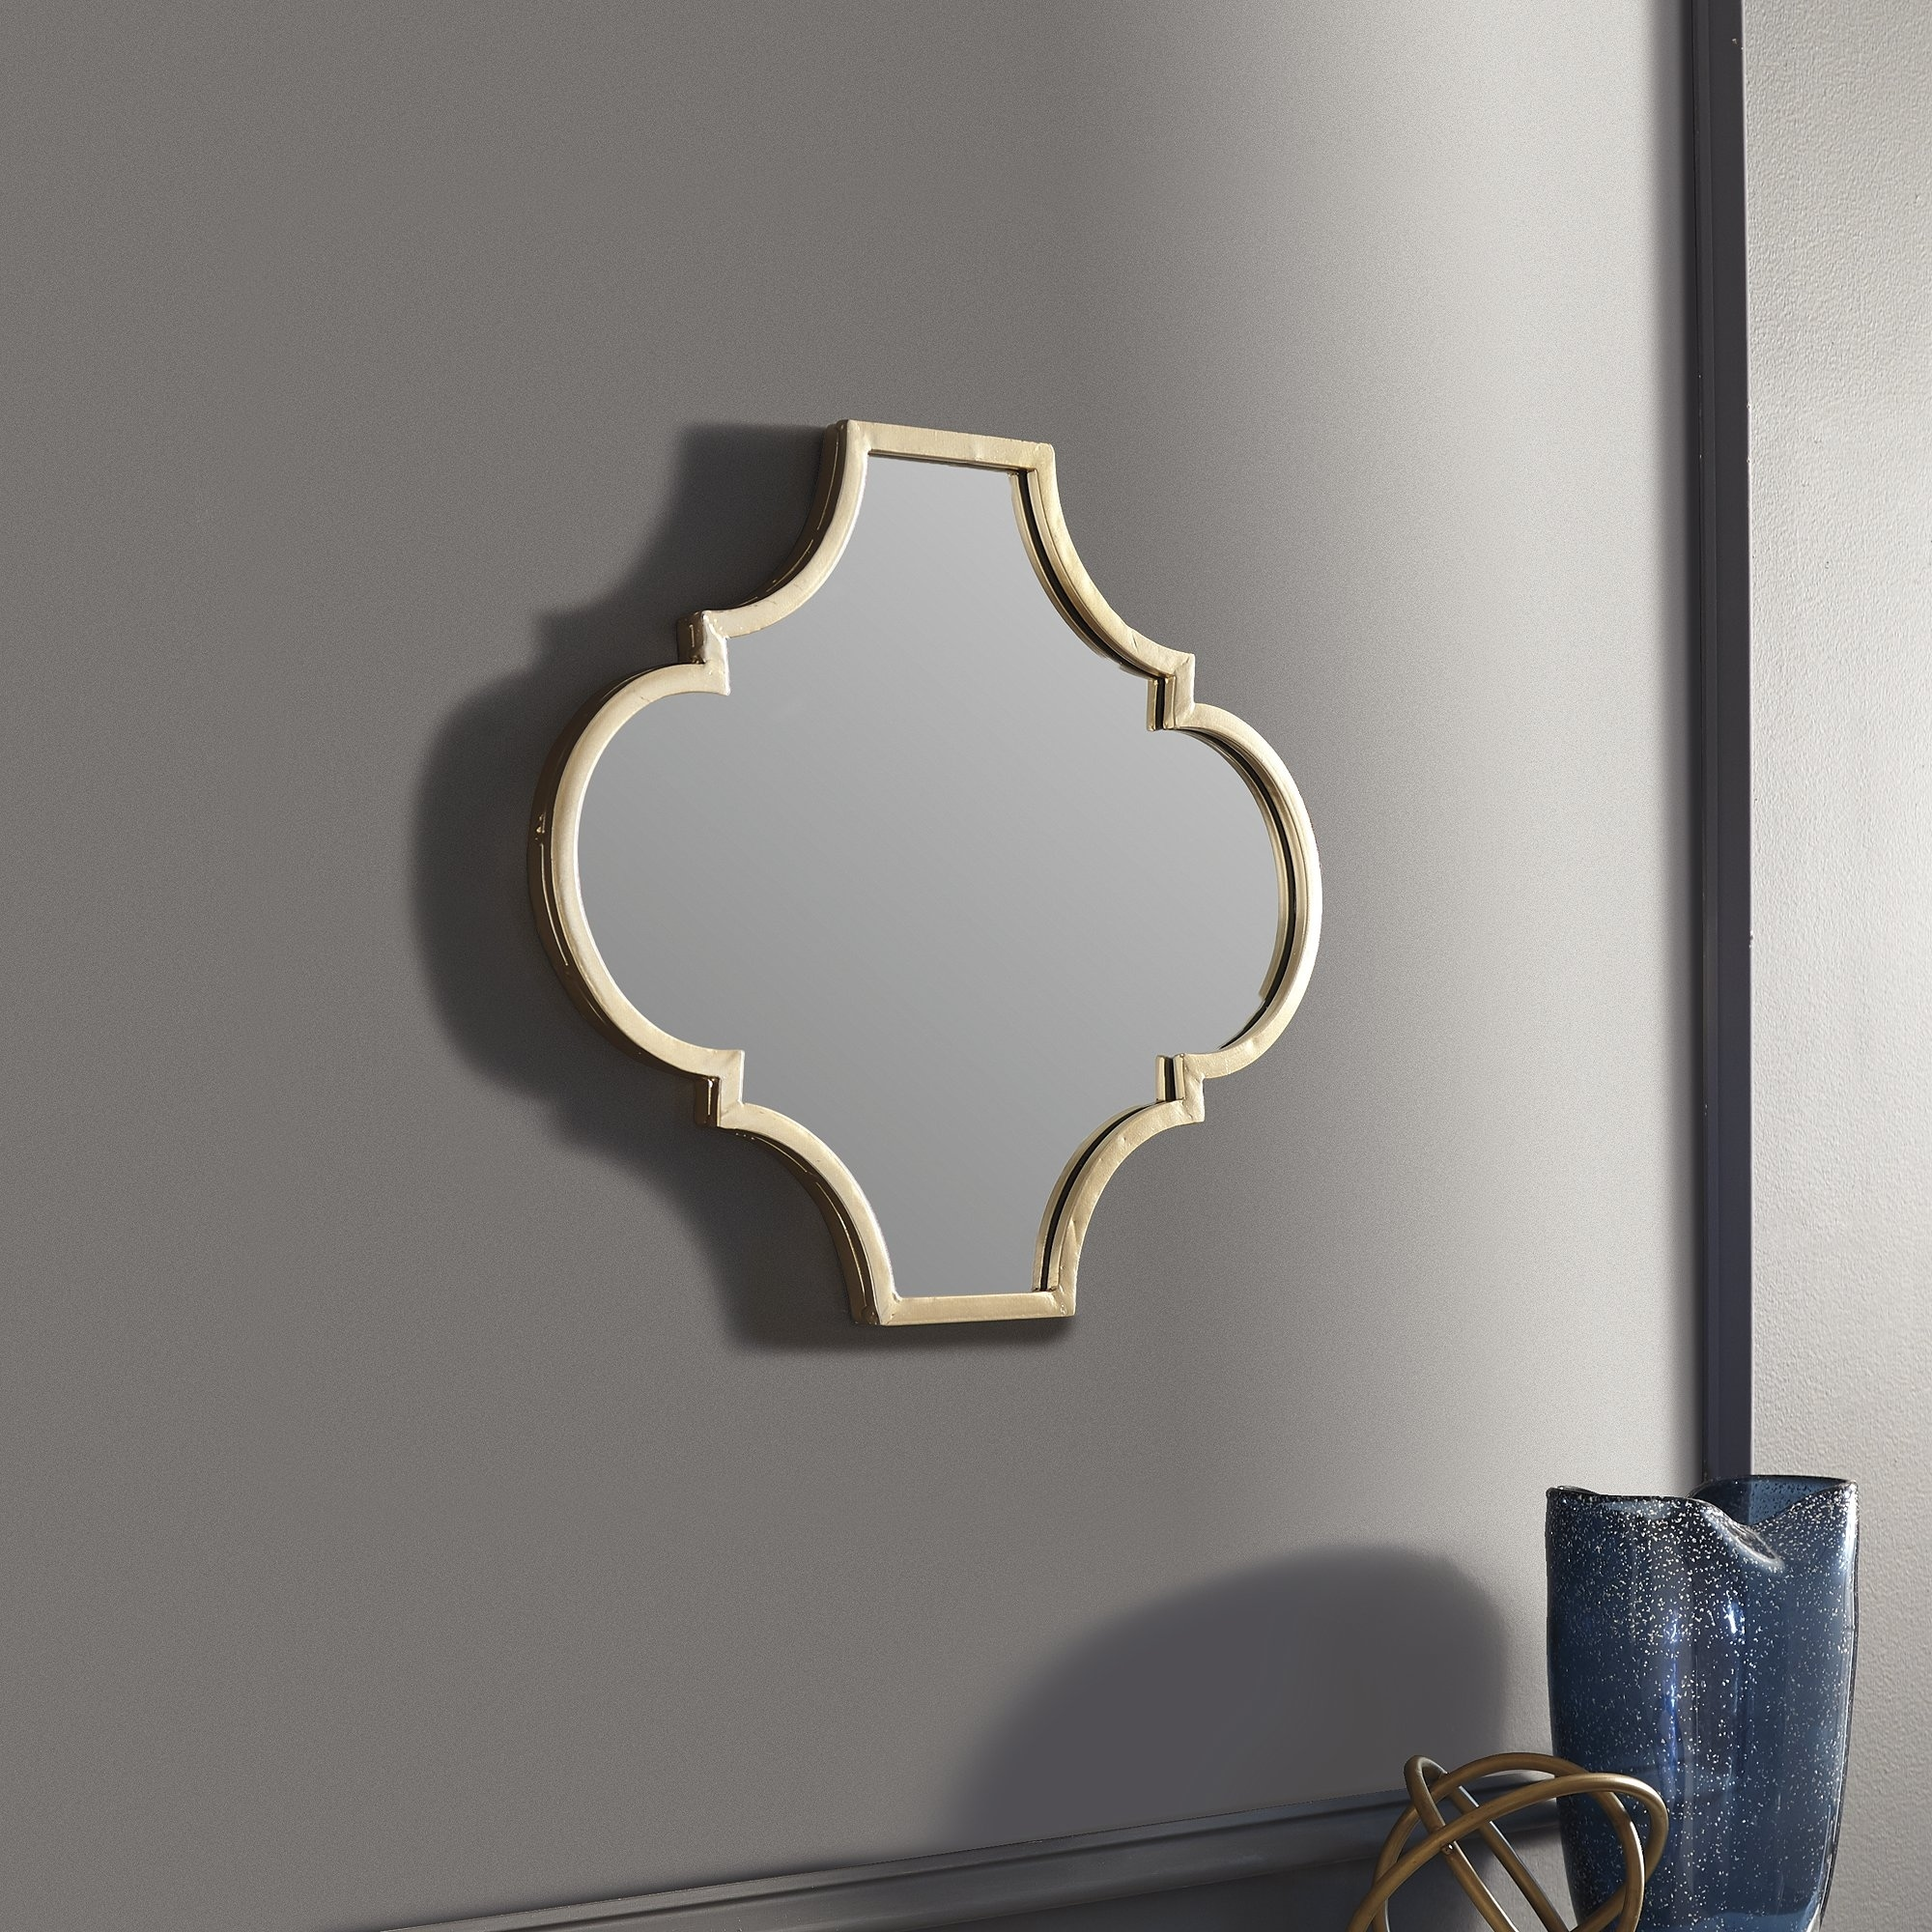 Callie Contemporary Gold Accent Mirror 18 75 W X 0 75 D X 16 H Overstock 20892659